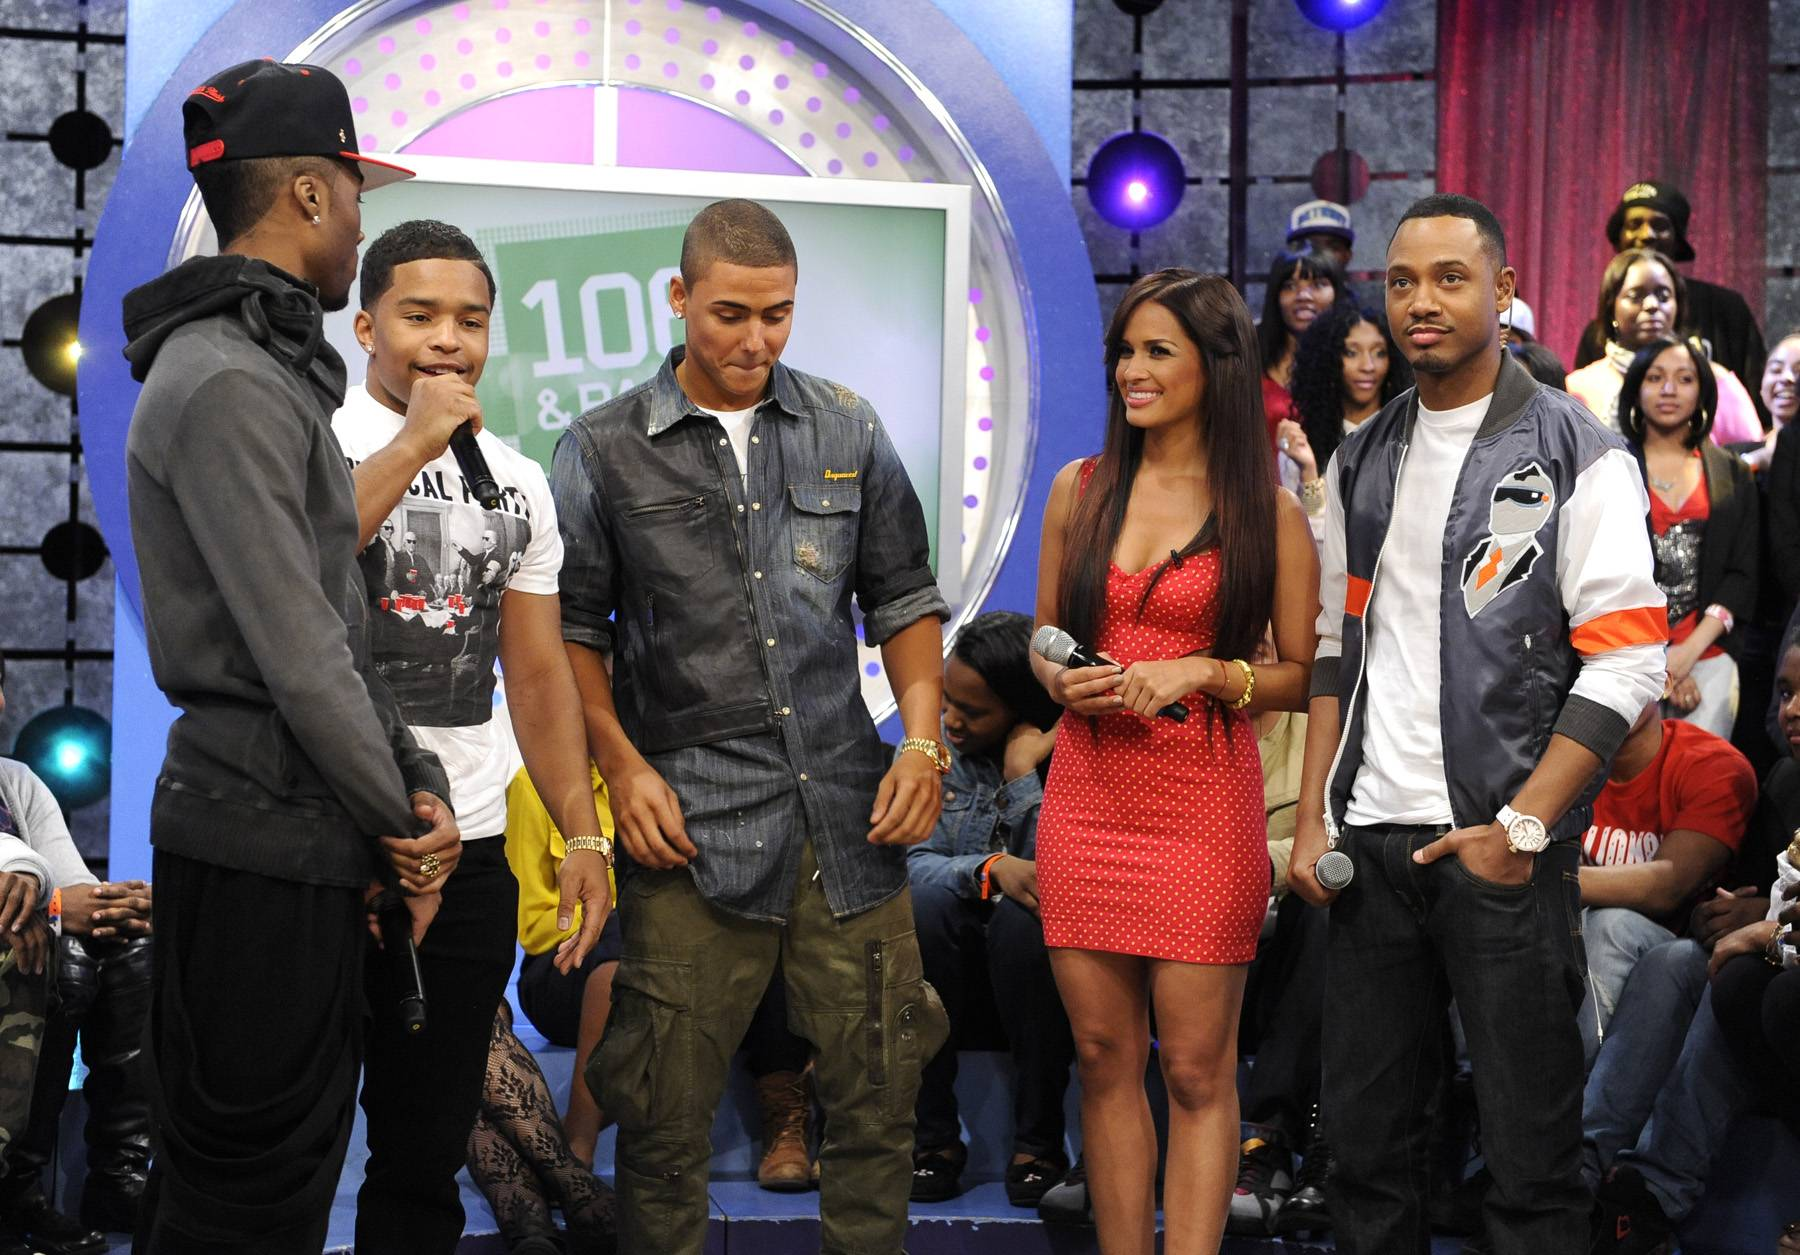 More Friends - Justin Combs joins Kendre, Quincy, Terrence J and Rocsi Diaz at 106 & Park, May 3, 2012. (Photo by: John Ricard / BET)